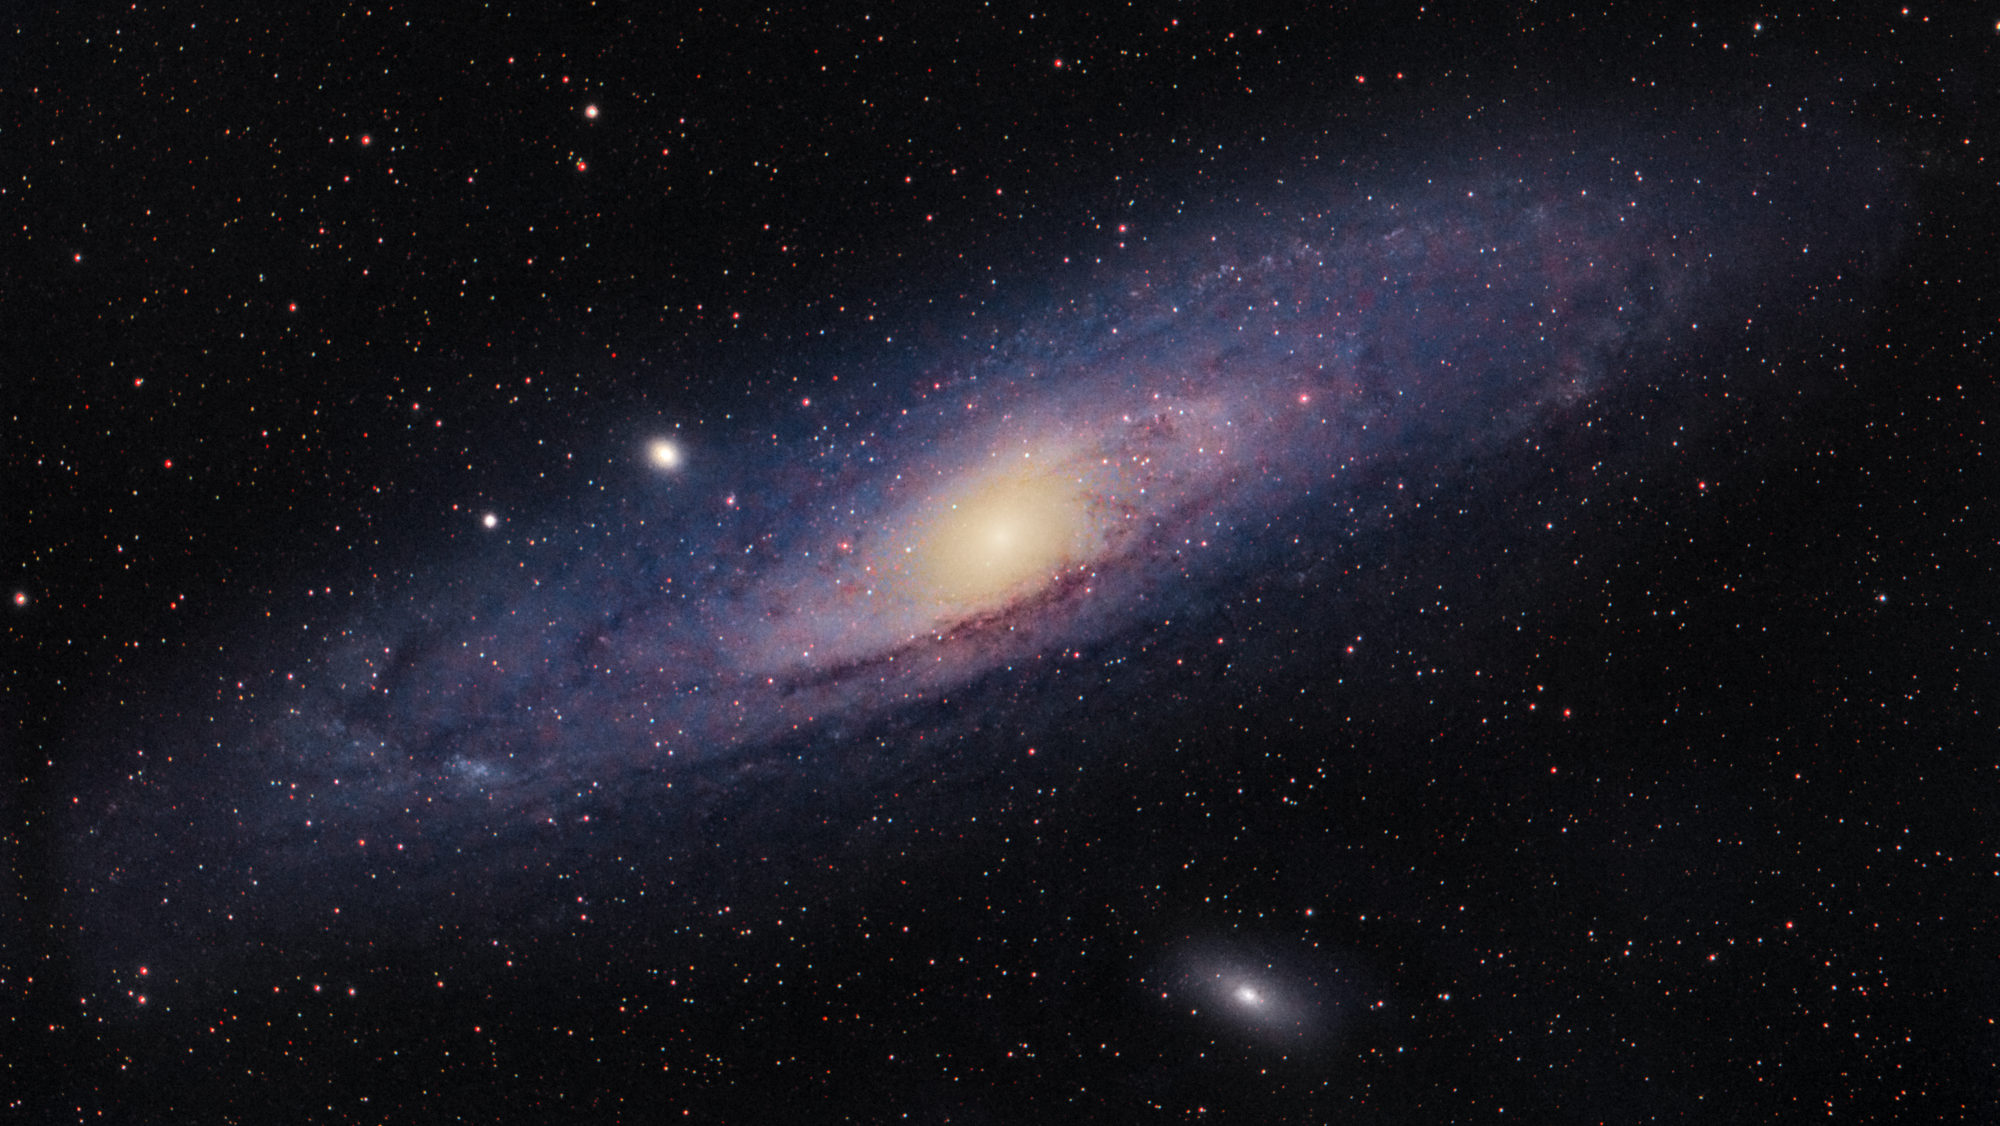 M31_Andromede_ISO800_30s_and_150s_32bit_stacked_processed-16-9.png